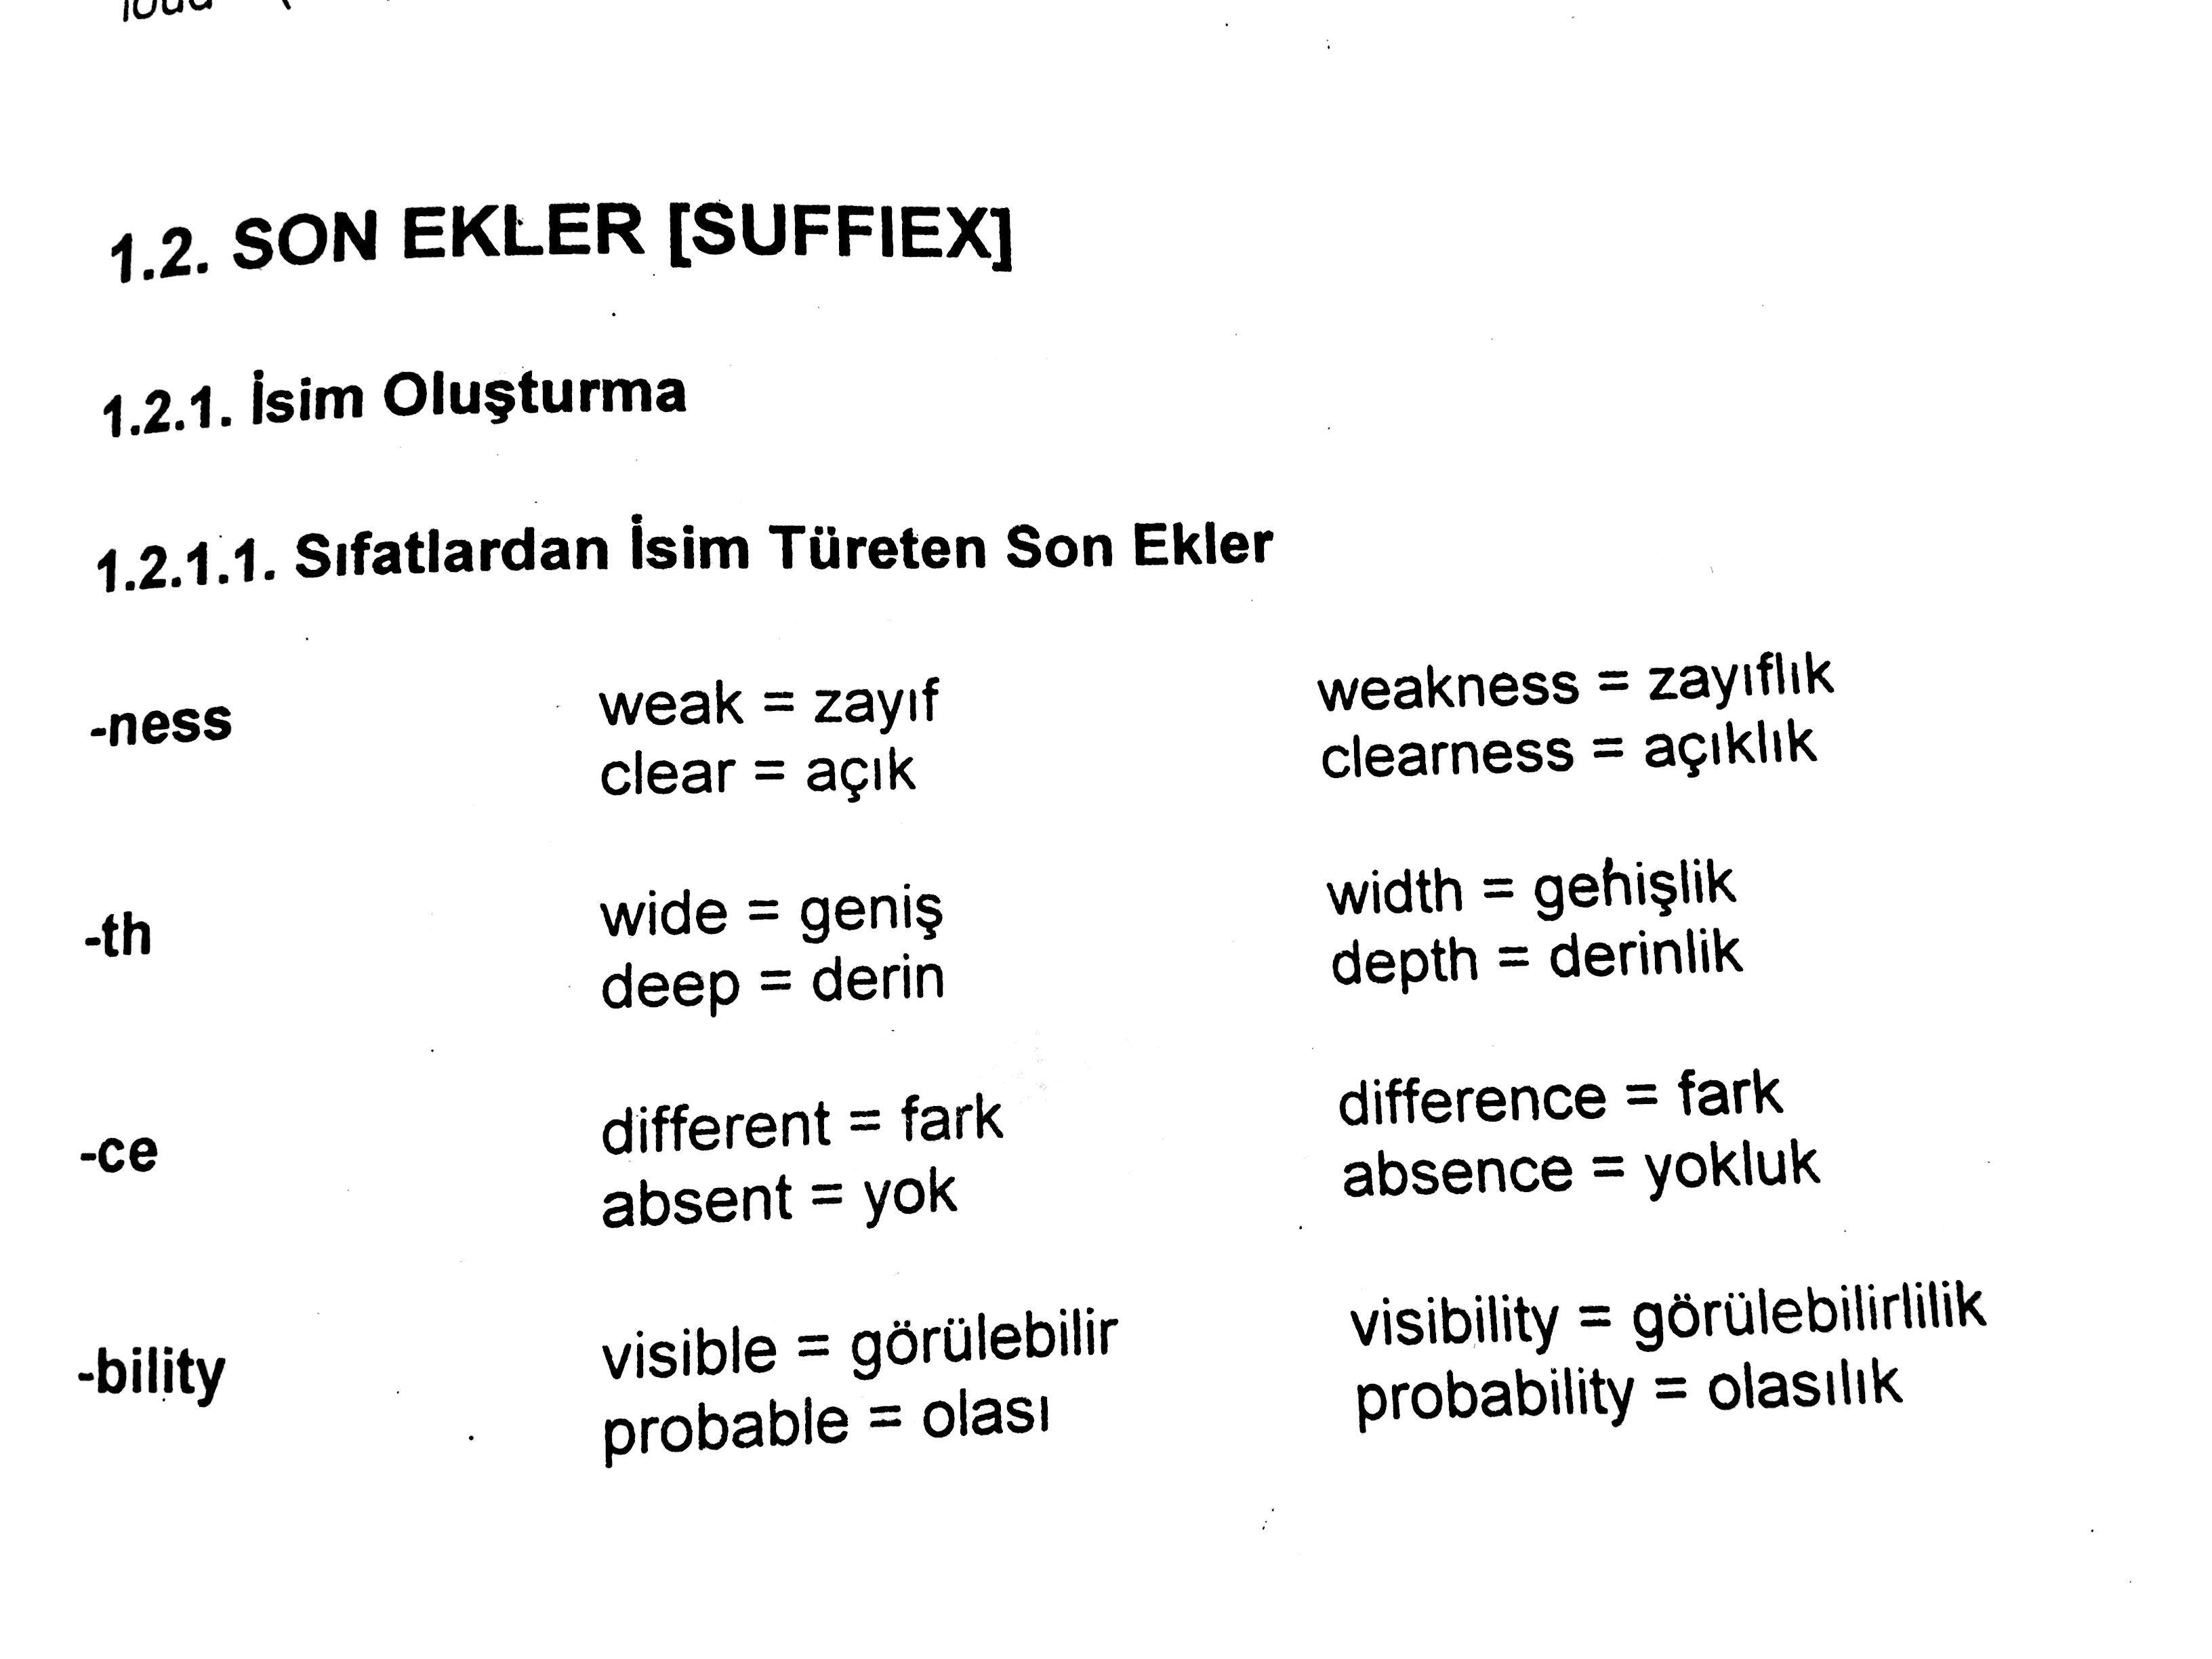 son ekler suffiex_1